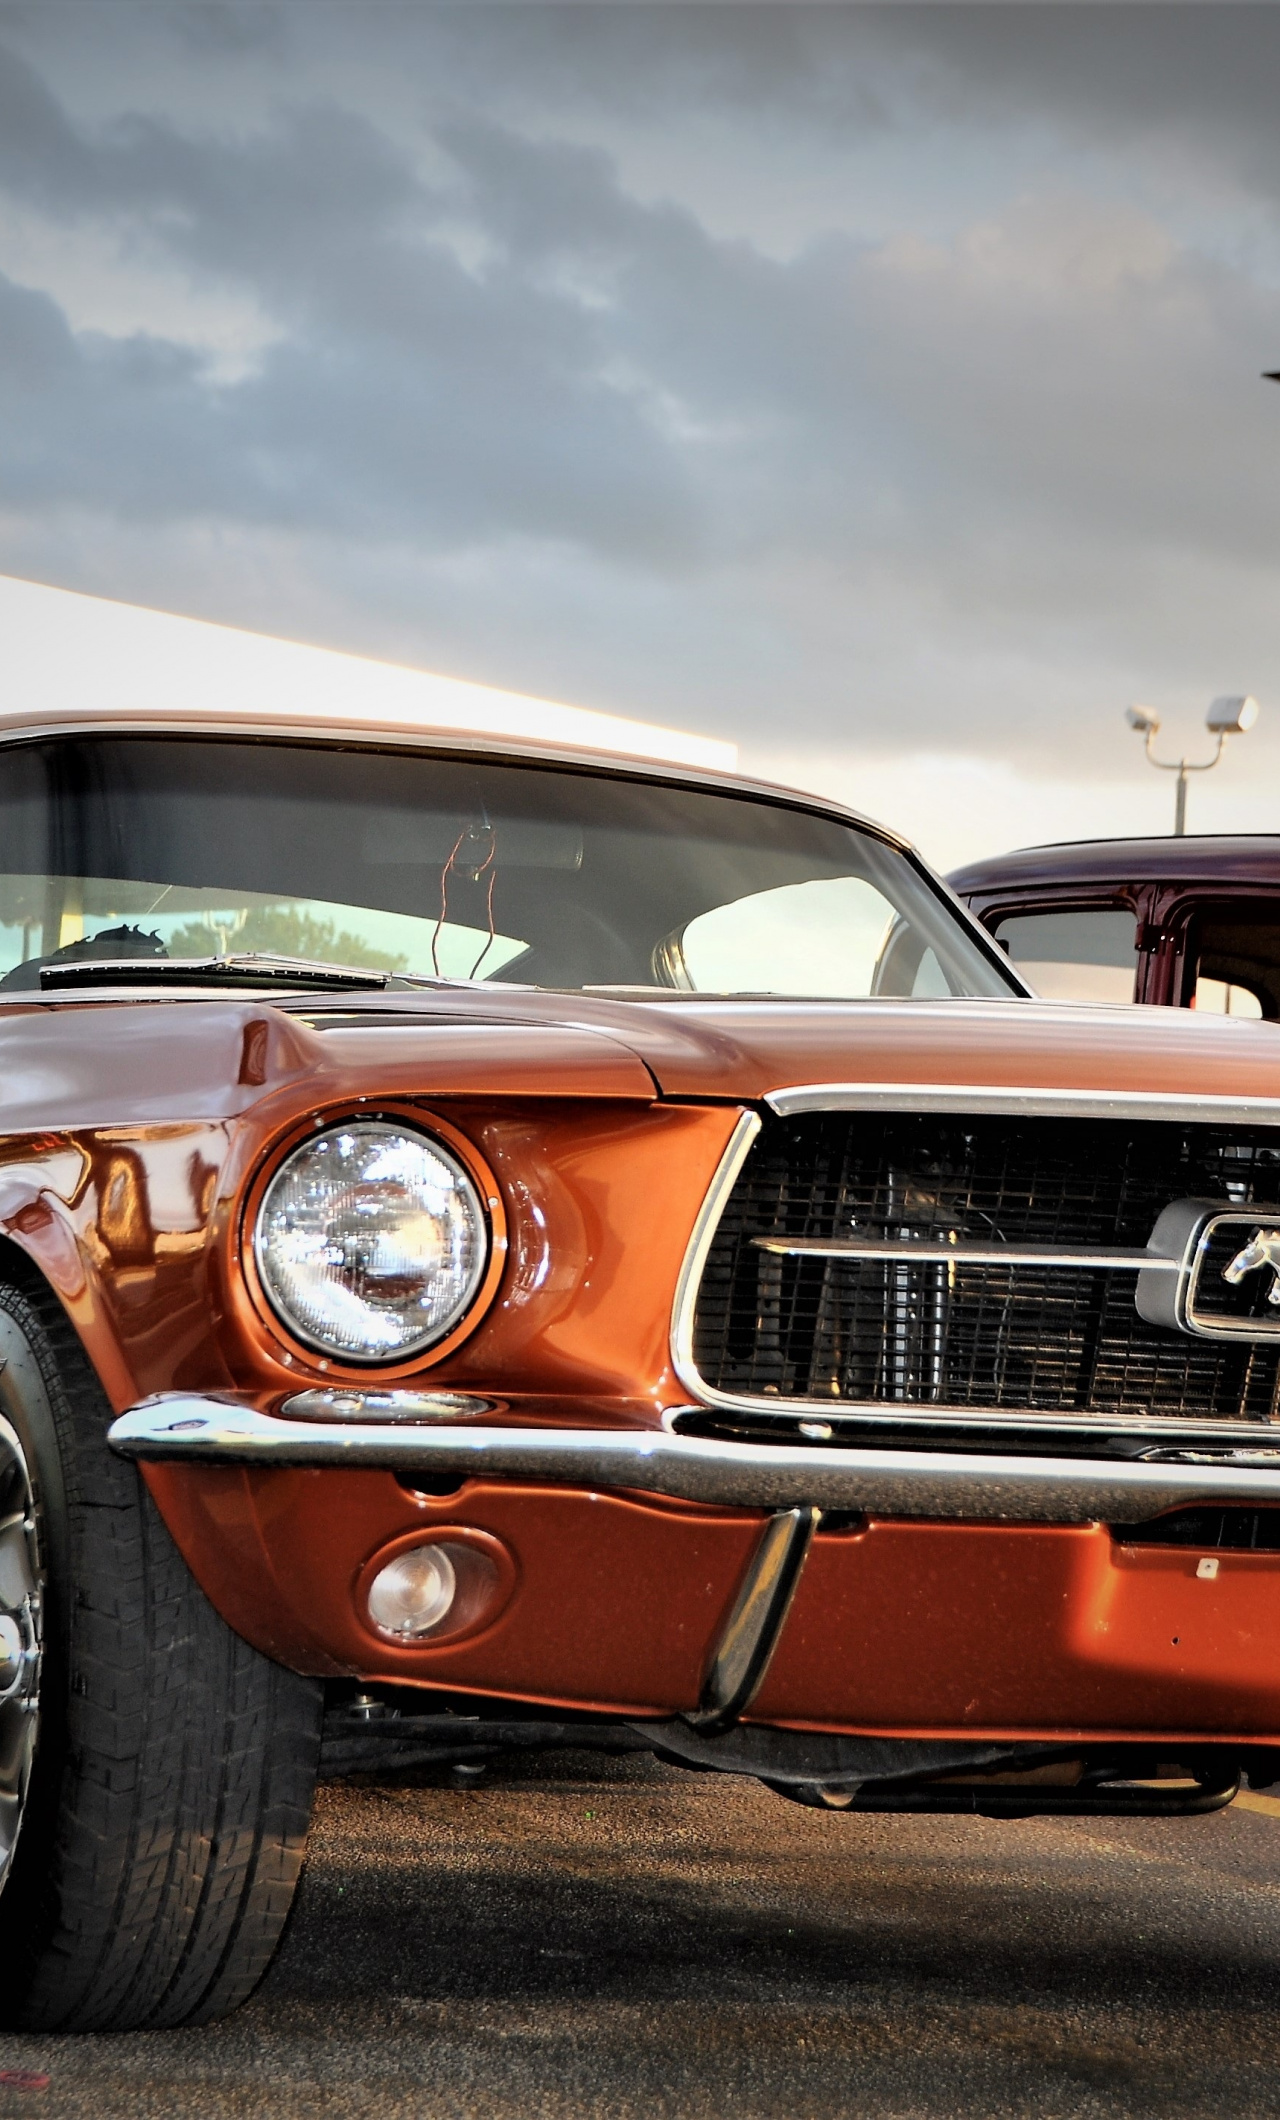 It's fun—and very harry potteresque—to have a bit of motion on your lock screen. Front Ford Mustang Muscle Car Wallpaper Muscle Car Wallpaper Iphone 6 1280x2120 Wallpaper Teahub Io